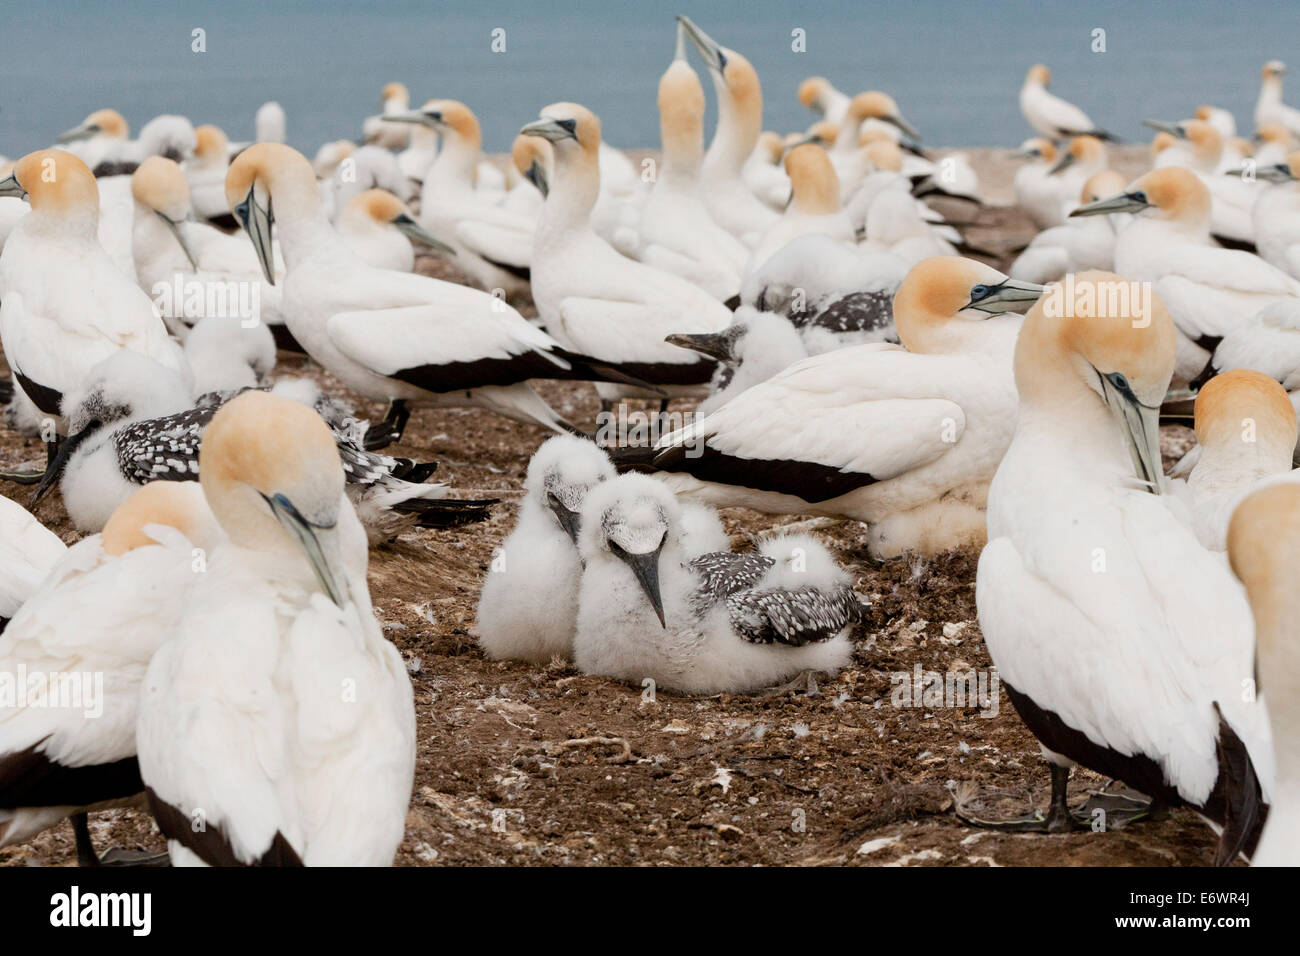 Breeding colony of Australiasian Gannets, Morus serrator at Cape Kidnappers Gannet Reserve, North Island, New Zealand Stock Photo